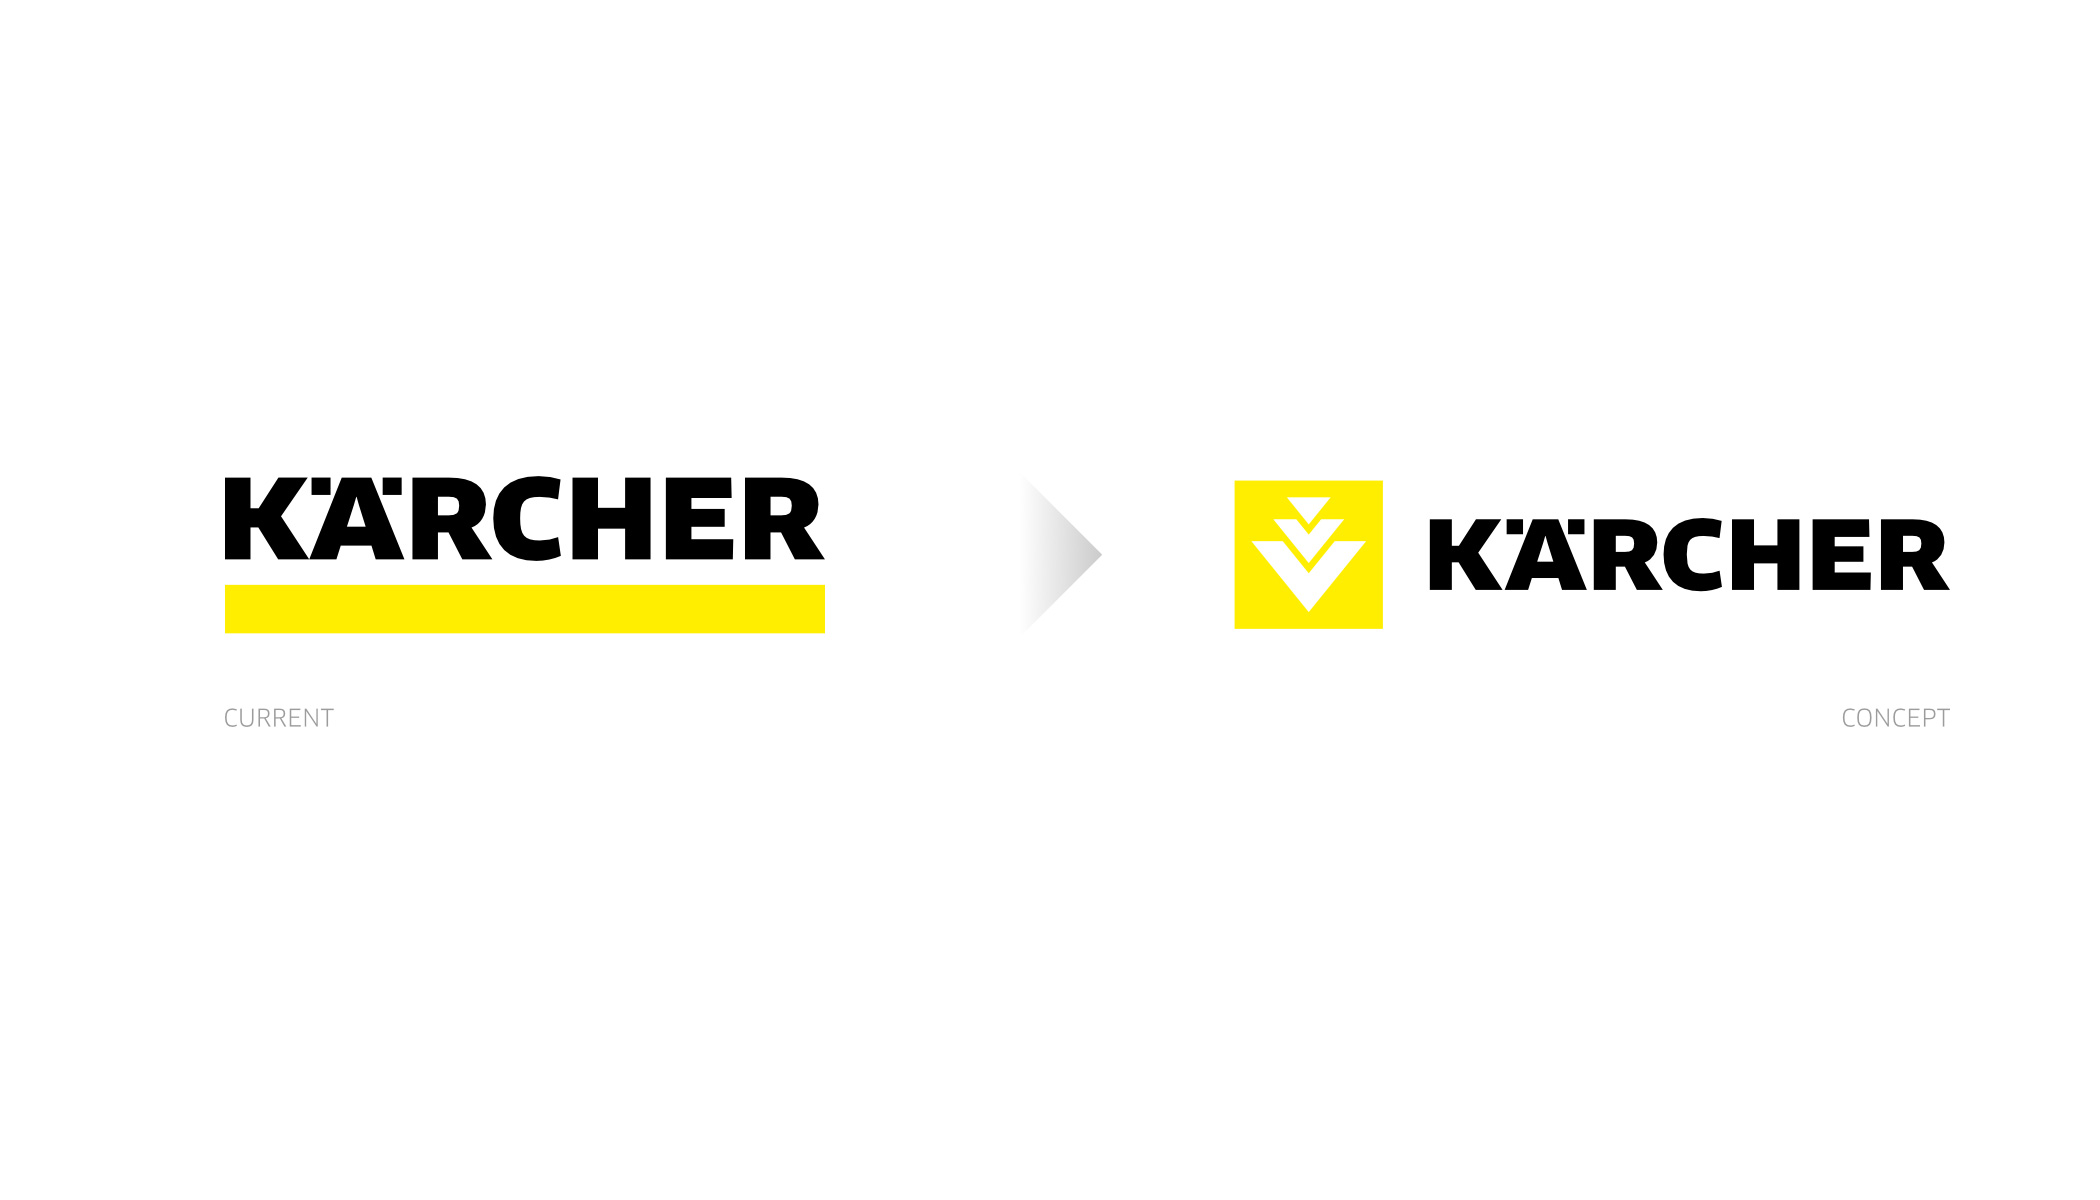 Kärcher - redesign concept: comparison